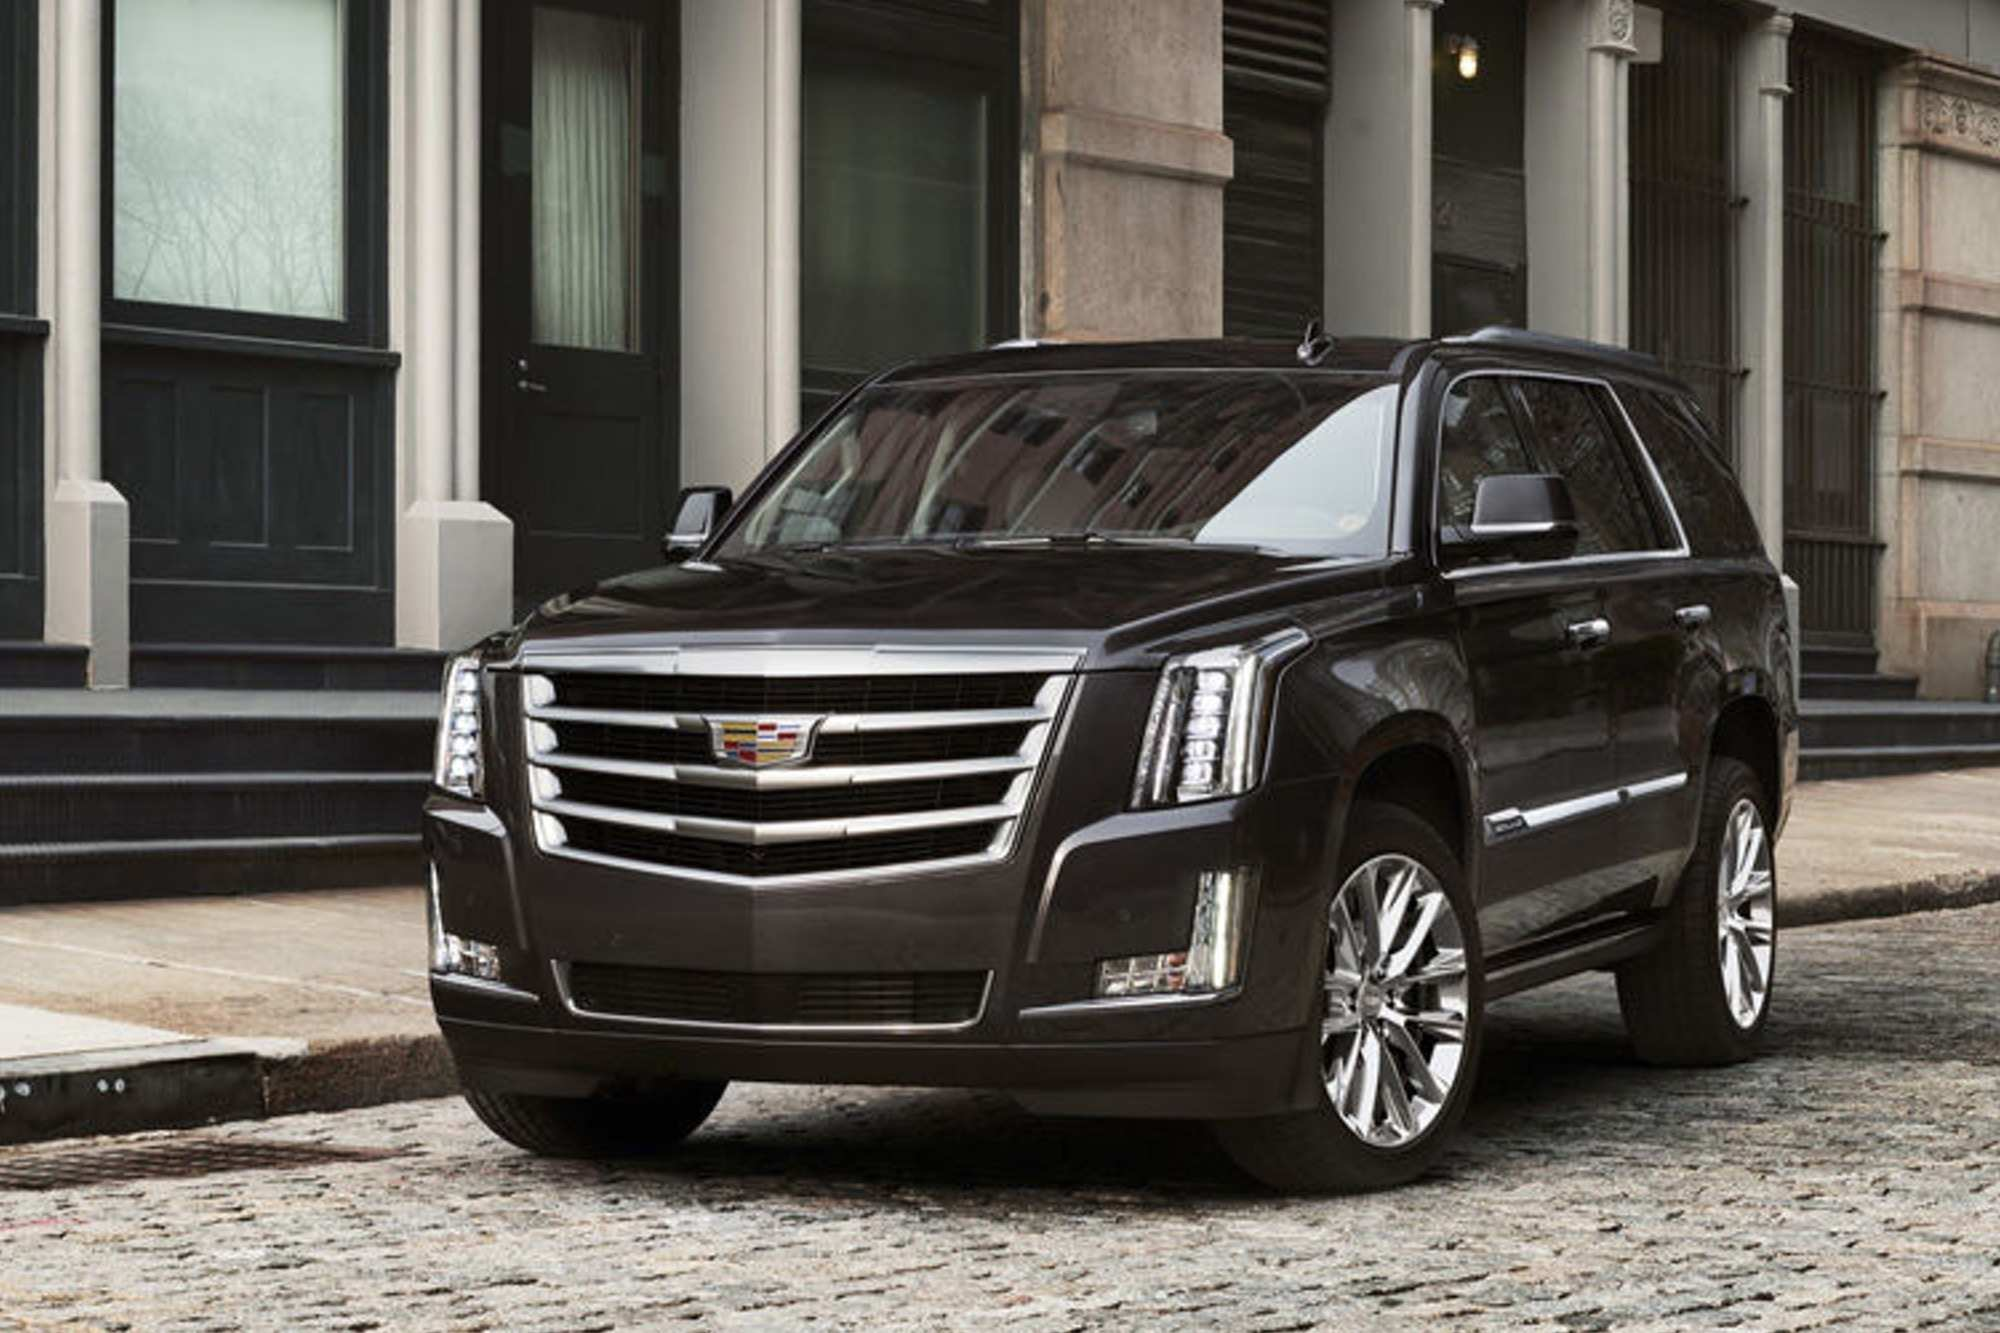 85 All New Cadillac Escalade 2020 Model Price and Review